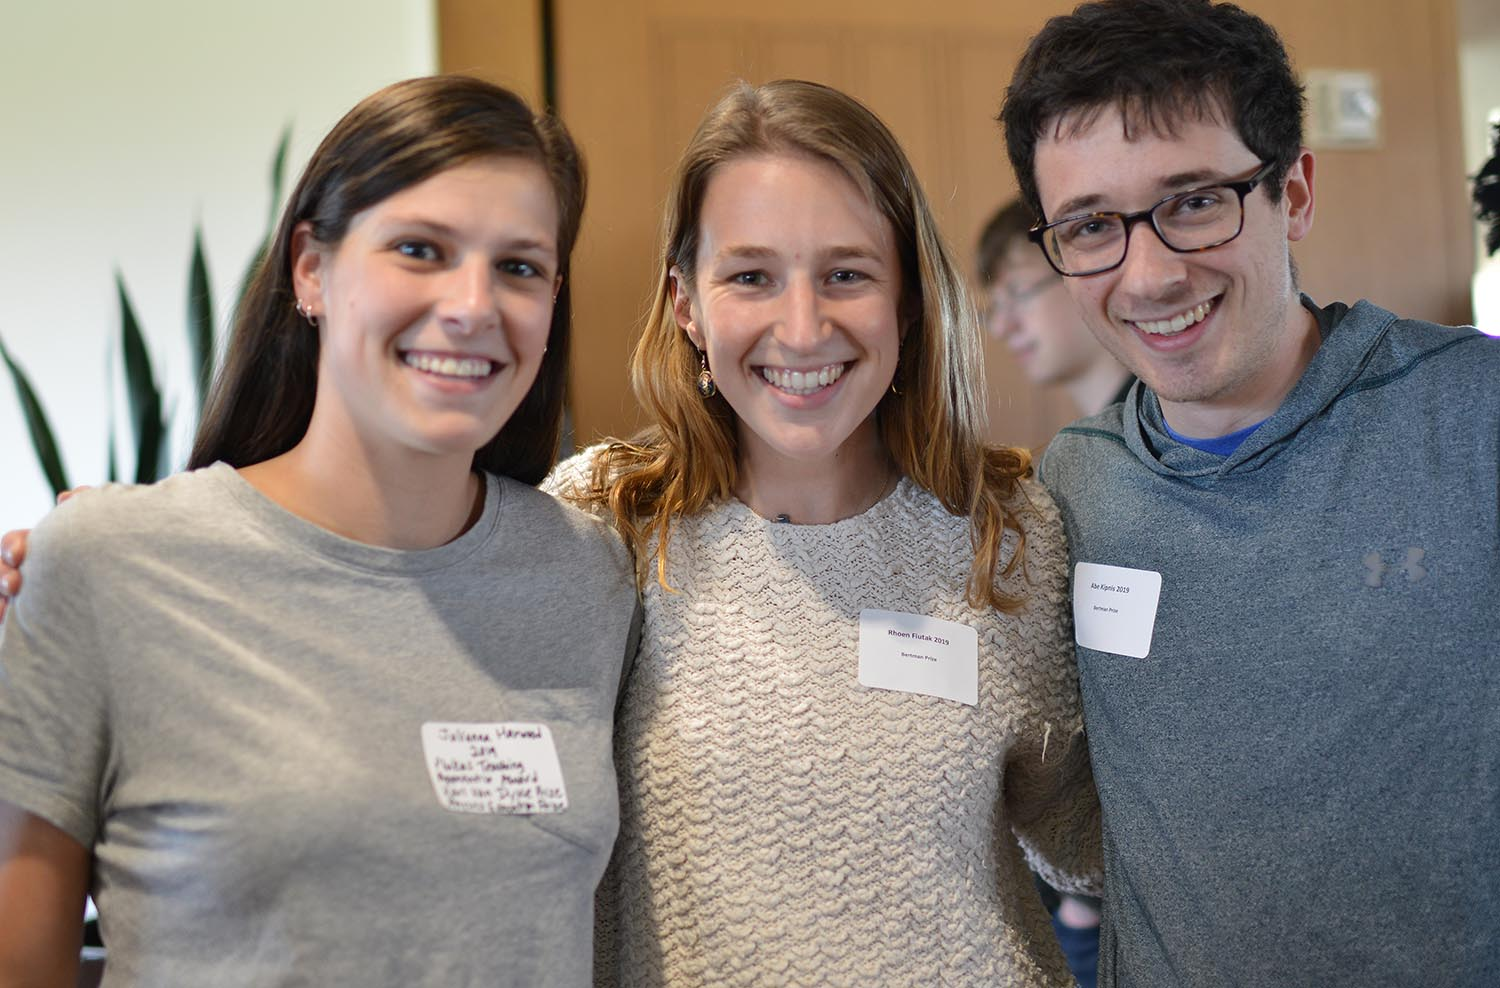 Julianna Harwood '19 received the Plukas Teaching Apprentice Award and the Karl Van Dyke Prize for outstanding achievement in physical science. Rhoen Fiutak '19 and Abe Kipnis '19 won the Bertman Prize for physics.